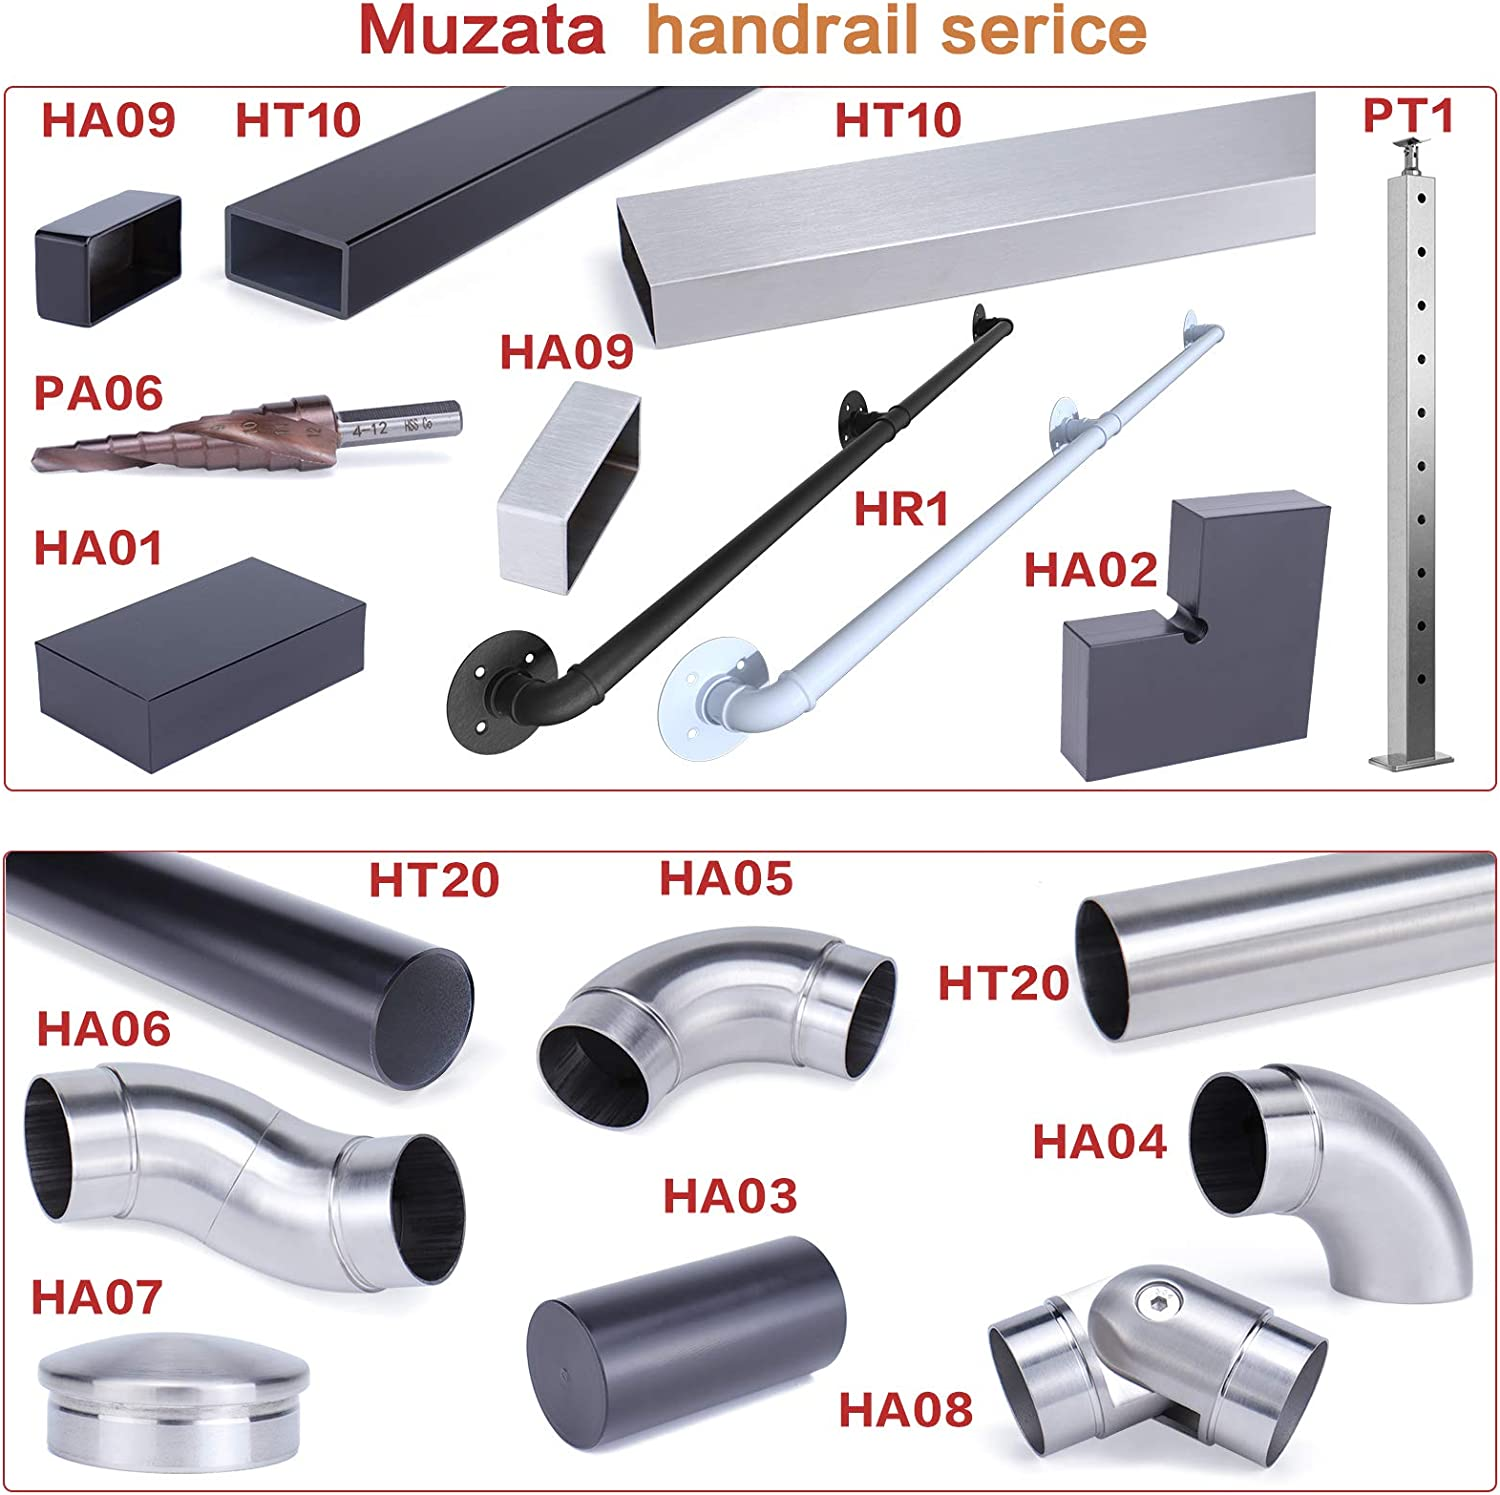 Fit Muzata PT1 Flat Top Post Wood Metal Balustrade HT10 SL4 HR2 Muzata Handrail Stainless Steel 6.6Ft for Cable Railing Deck Stair Indoor Outdoor System 60mmx30mm Rectangle Brushed Finishing